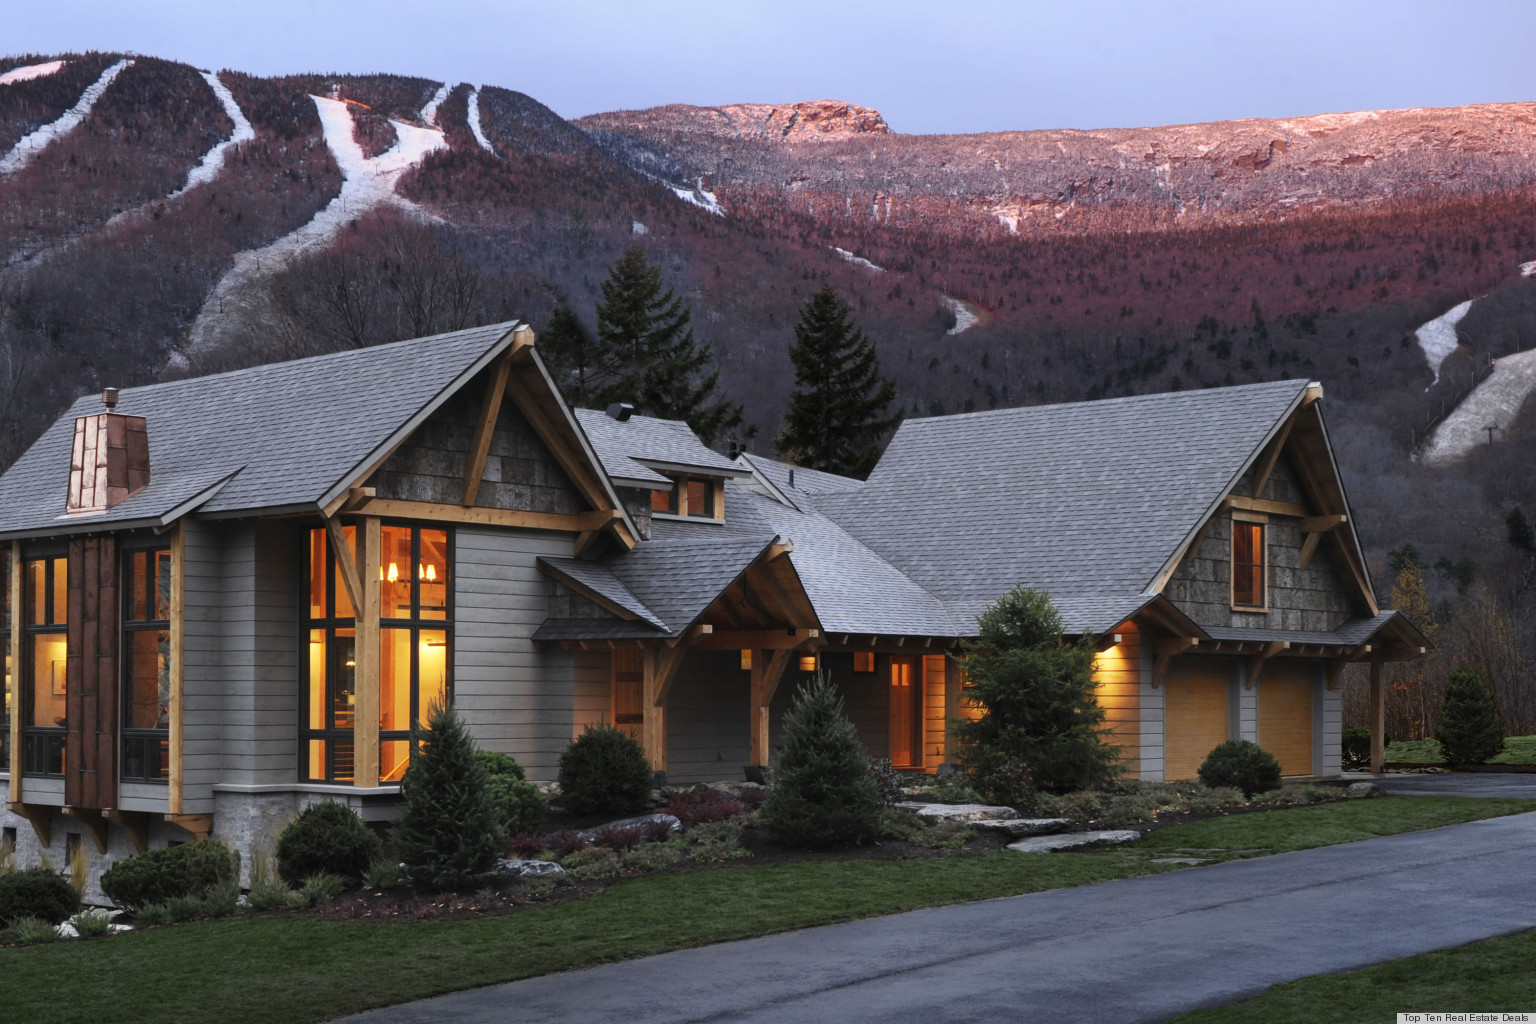 Hgtv dream home 2011 in stowe vermont on sale for for Hgtv home for sale